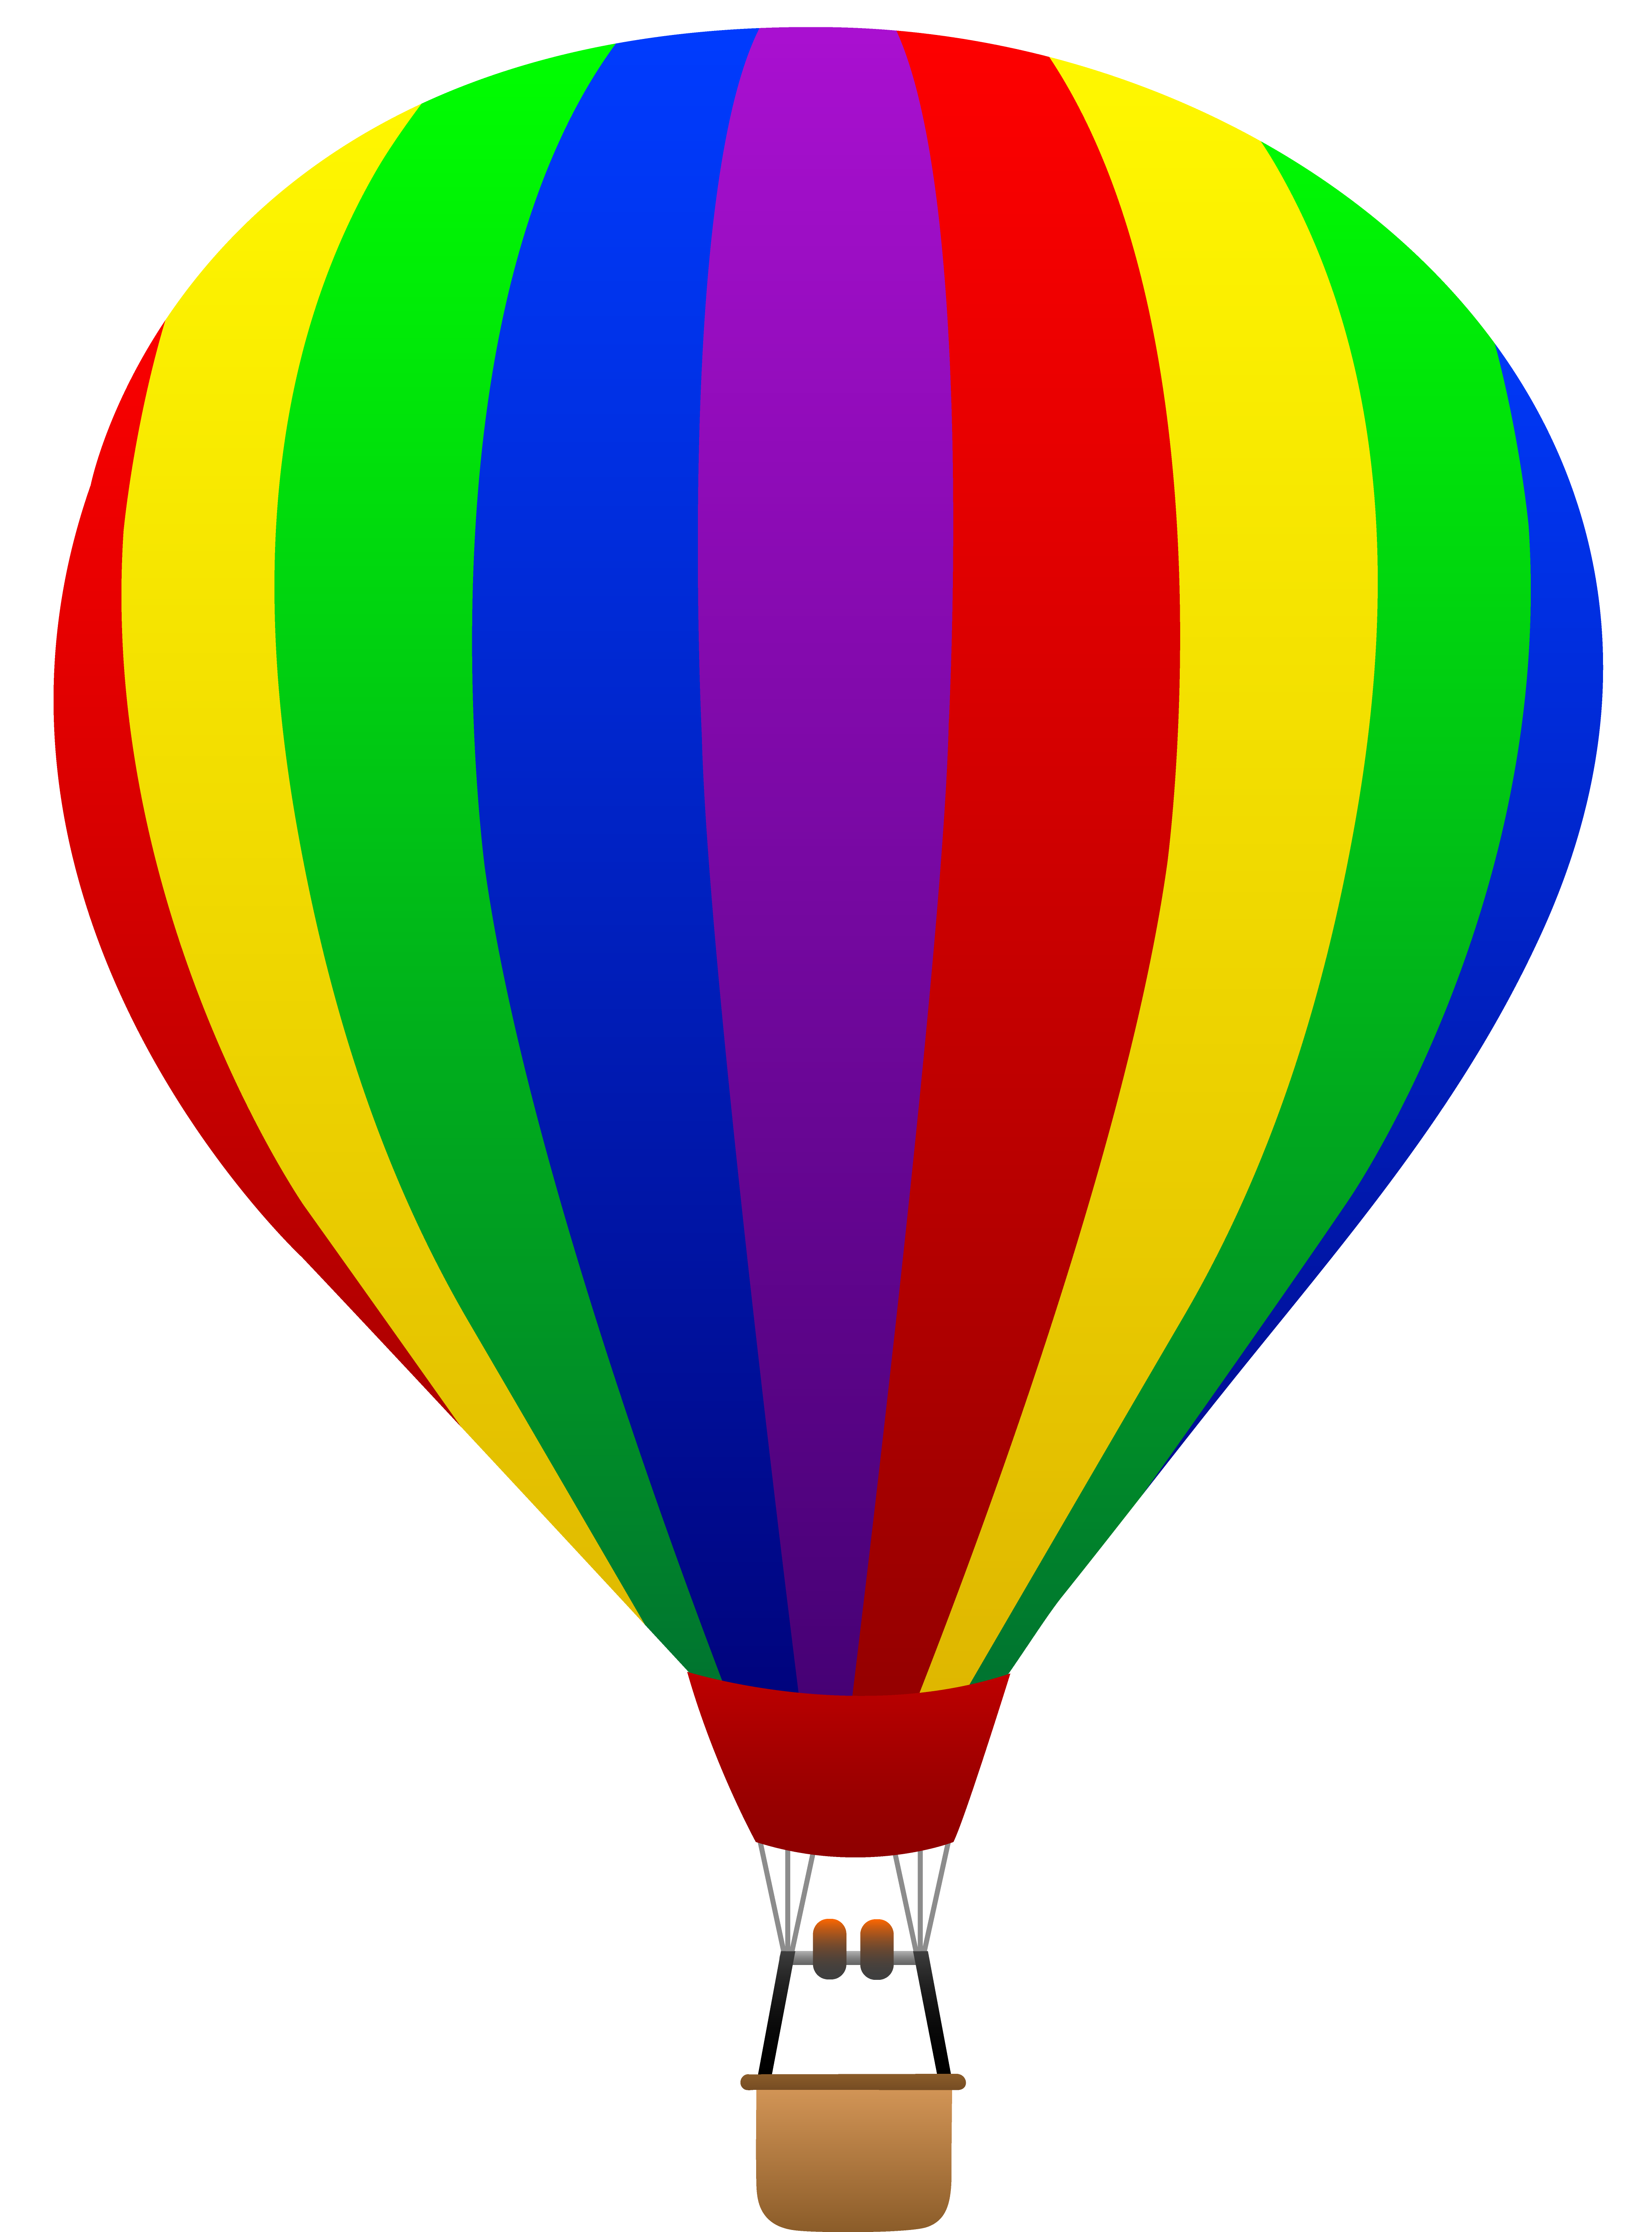 4114x5559 Trend Cartoon Hot Air Balloon Images Rainbow Striped Free Clip Art